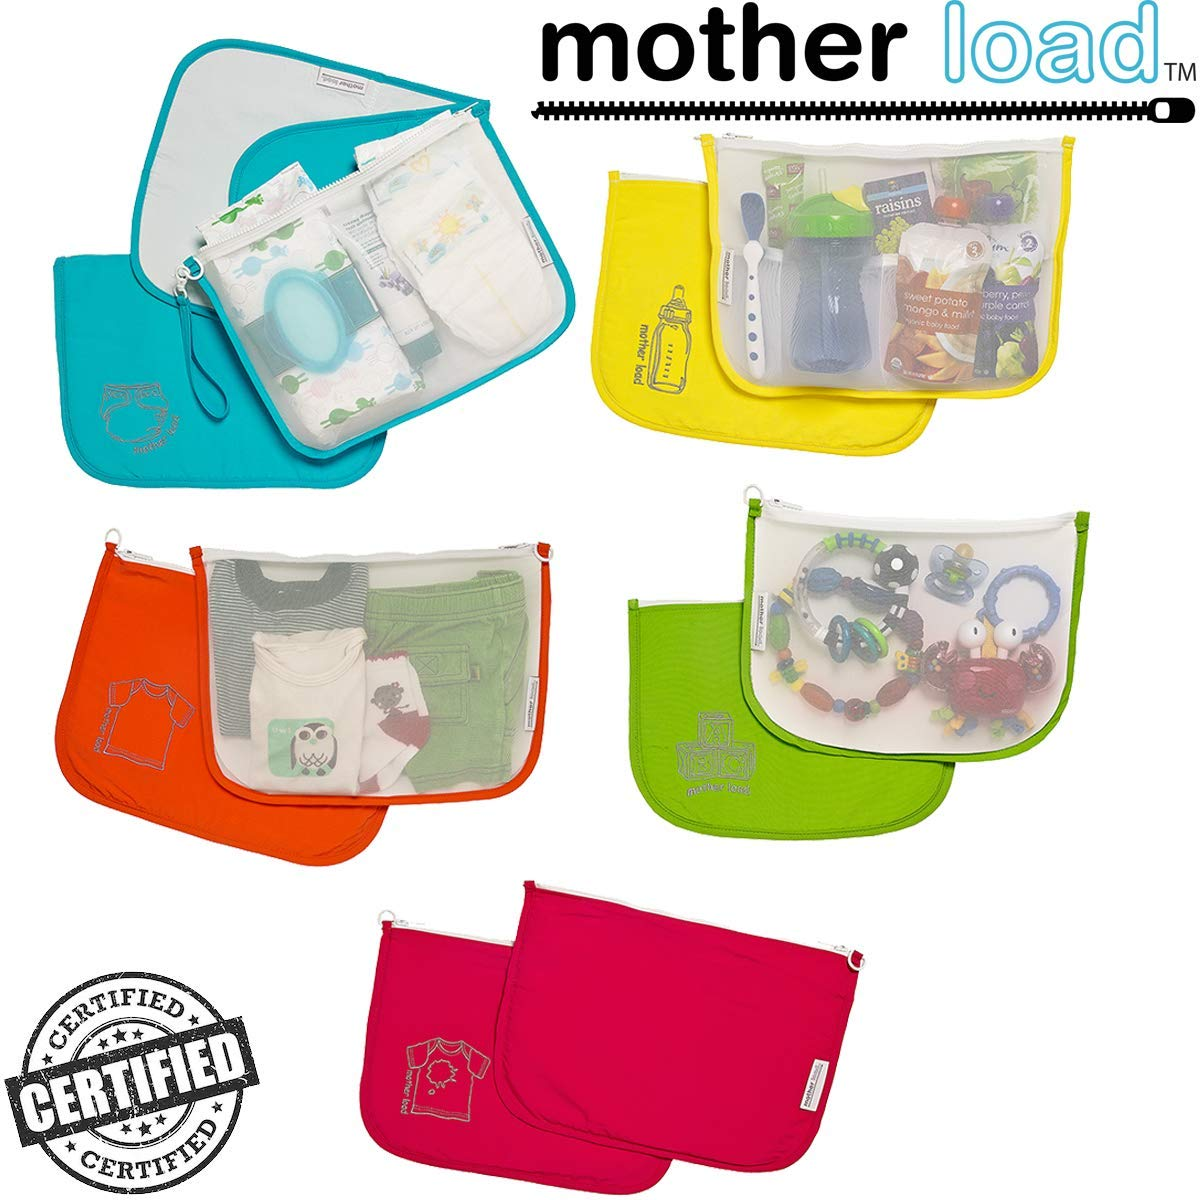 Diaper Bag Organizer Pouches by MOTHER LOAD - Designed for The On-The-Go Family (Mom & Dads), Organize Any Traditional Diaper Bag, Purse or Backpack ...